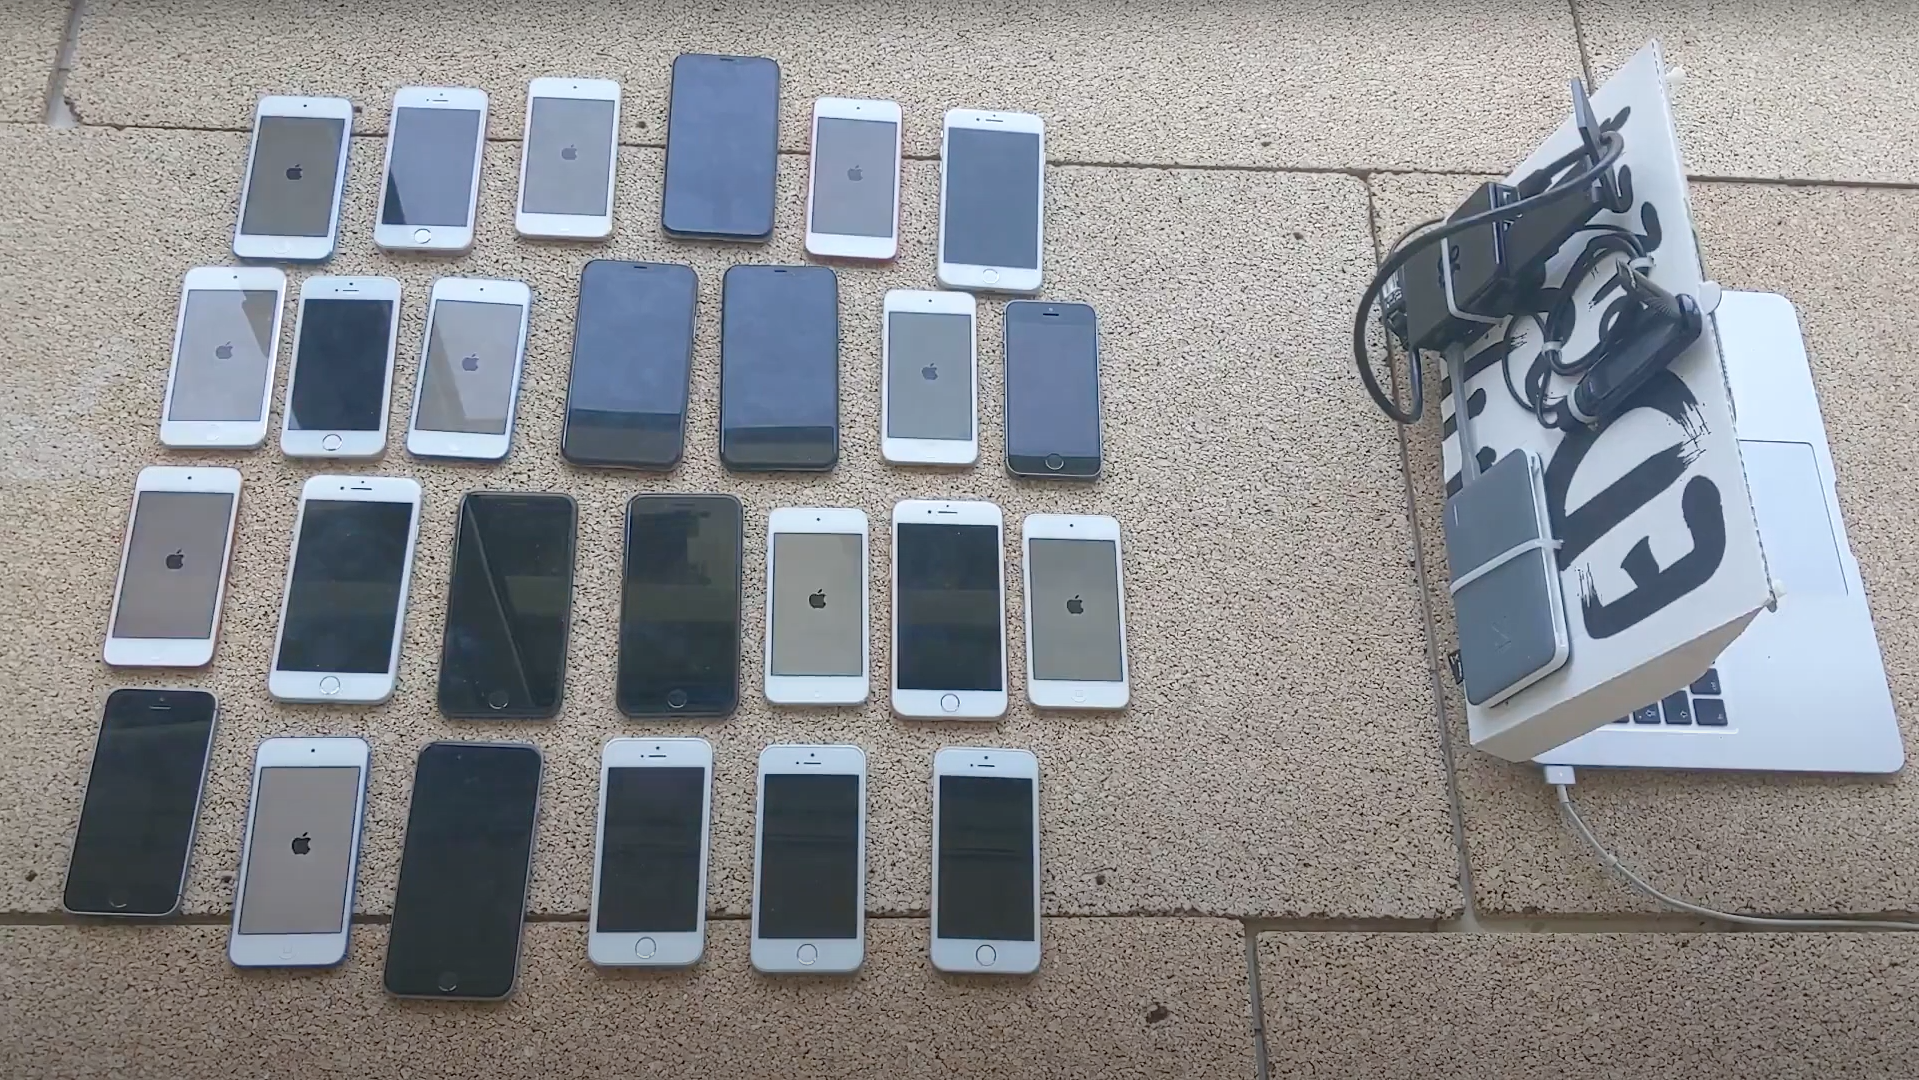 vice.com - Watch This Google Hacker Pwn 26 iPhones With a 'WiFi Broadcast Packet of Death' - VICE